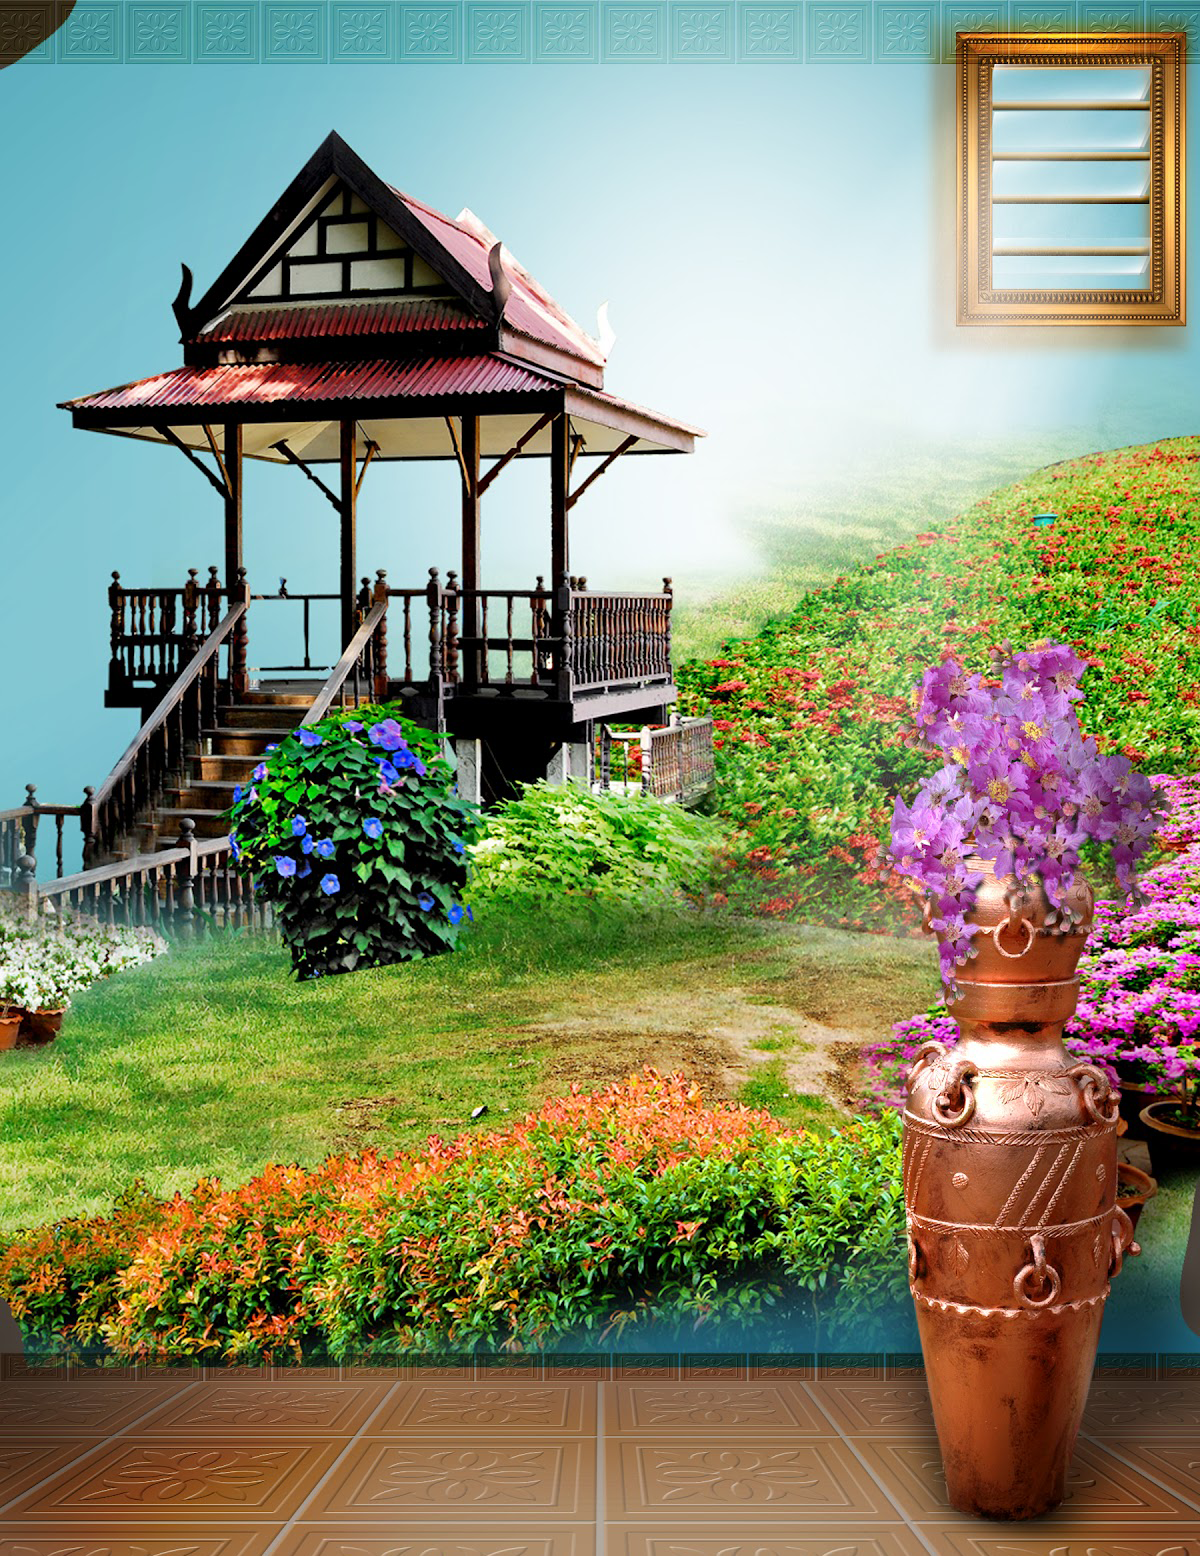 Full Garden In Backyard: Studio Background 8x12 HD Free Download